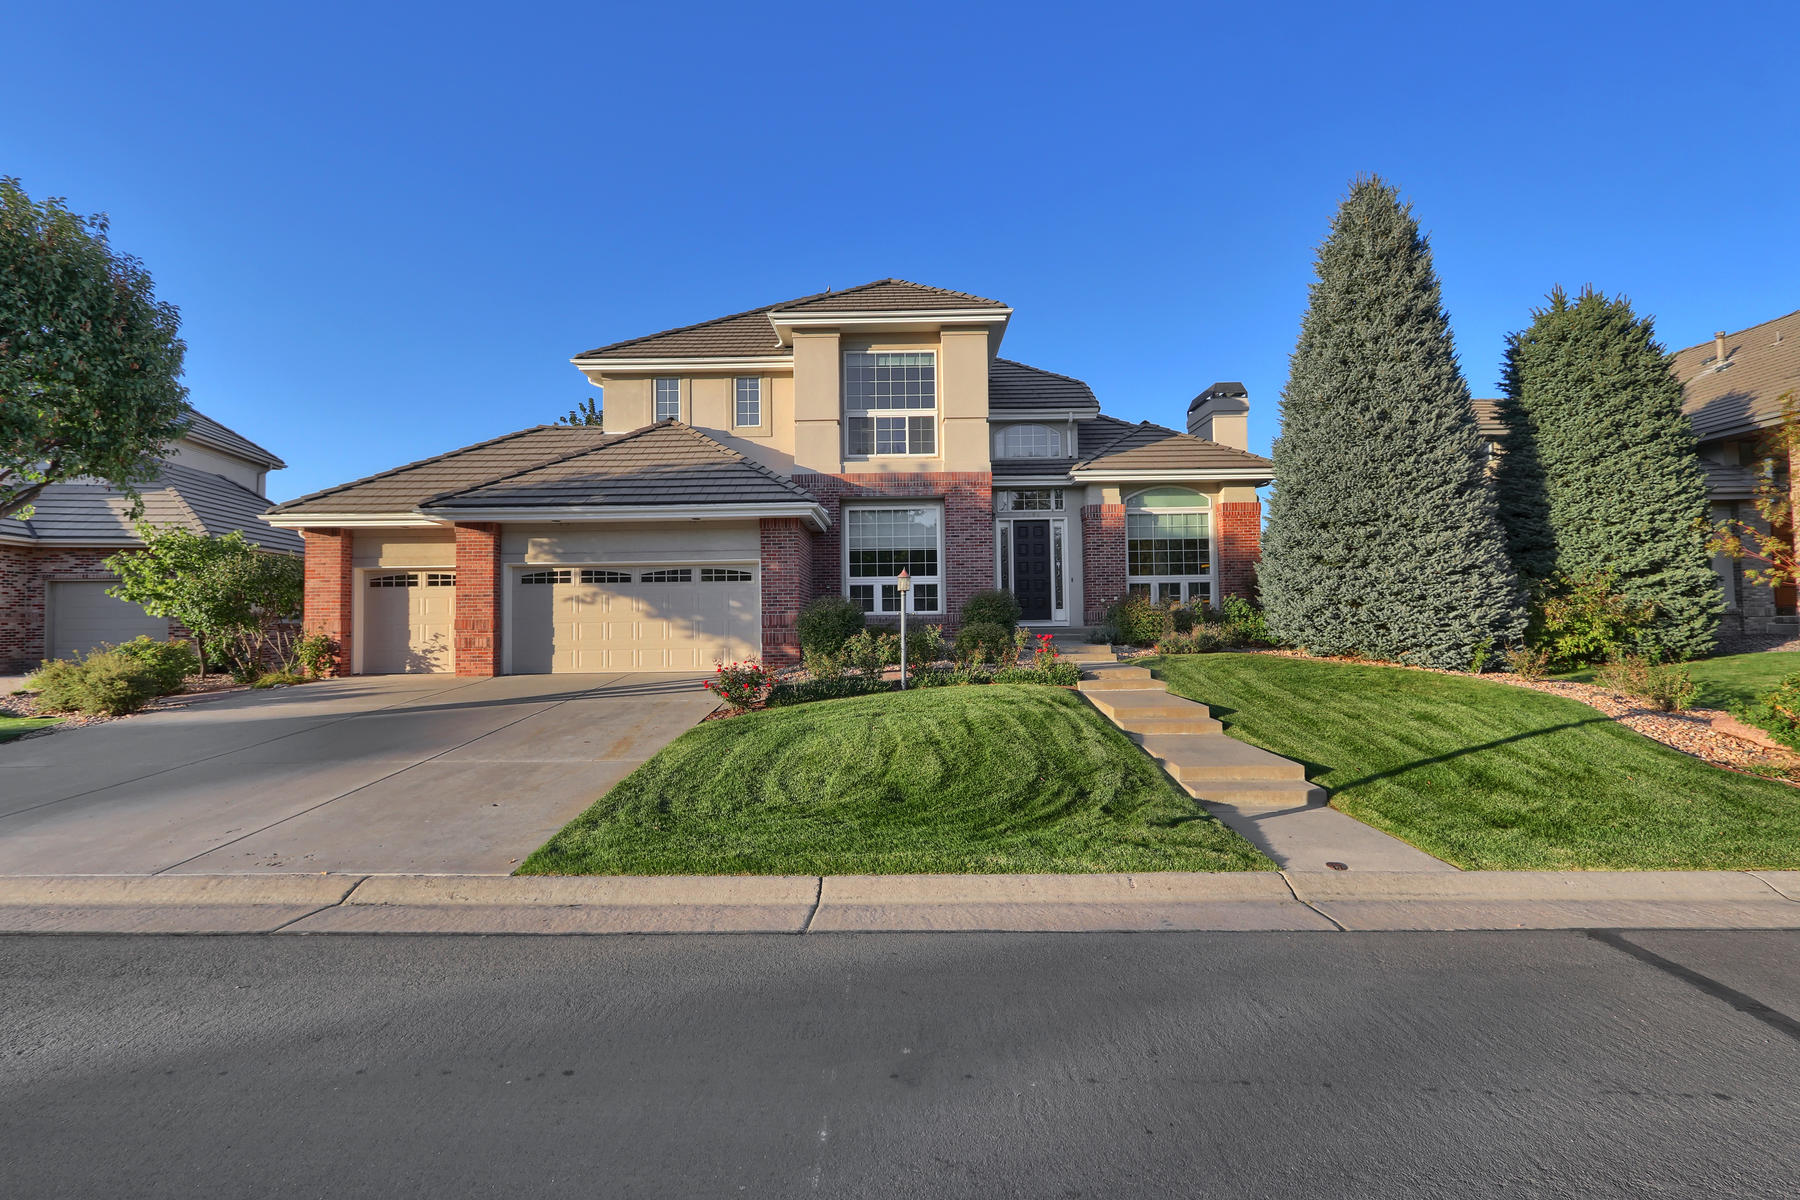 Single Family Homes for Sale at Enjoy spectacular mountain views from decks and many windows. 9385 E Hidden Hill Ln Lone Tree, Colorado 80124 United States